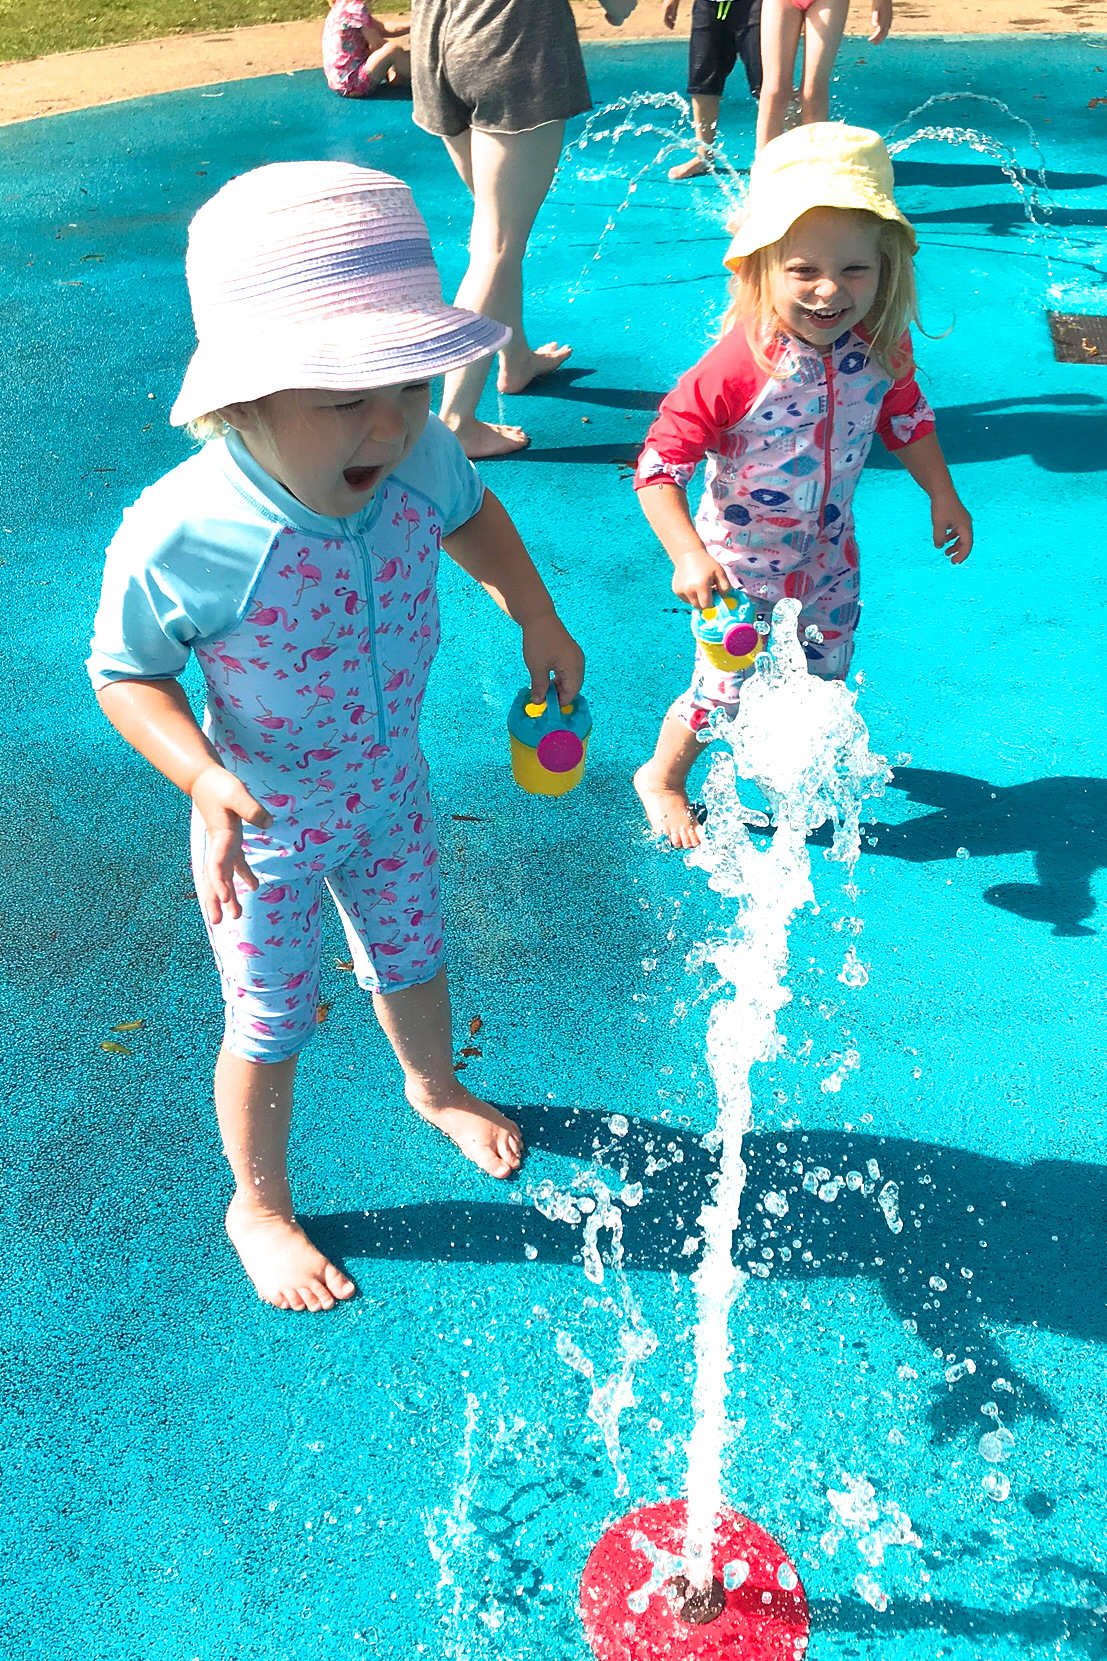 Two sisters in a splash park, playing with a jet of water, laughing